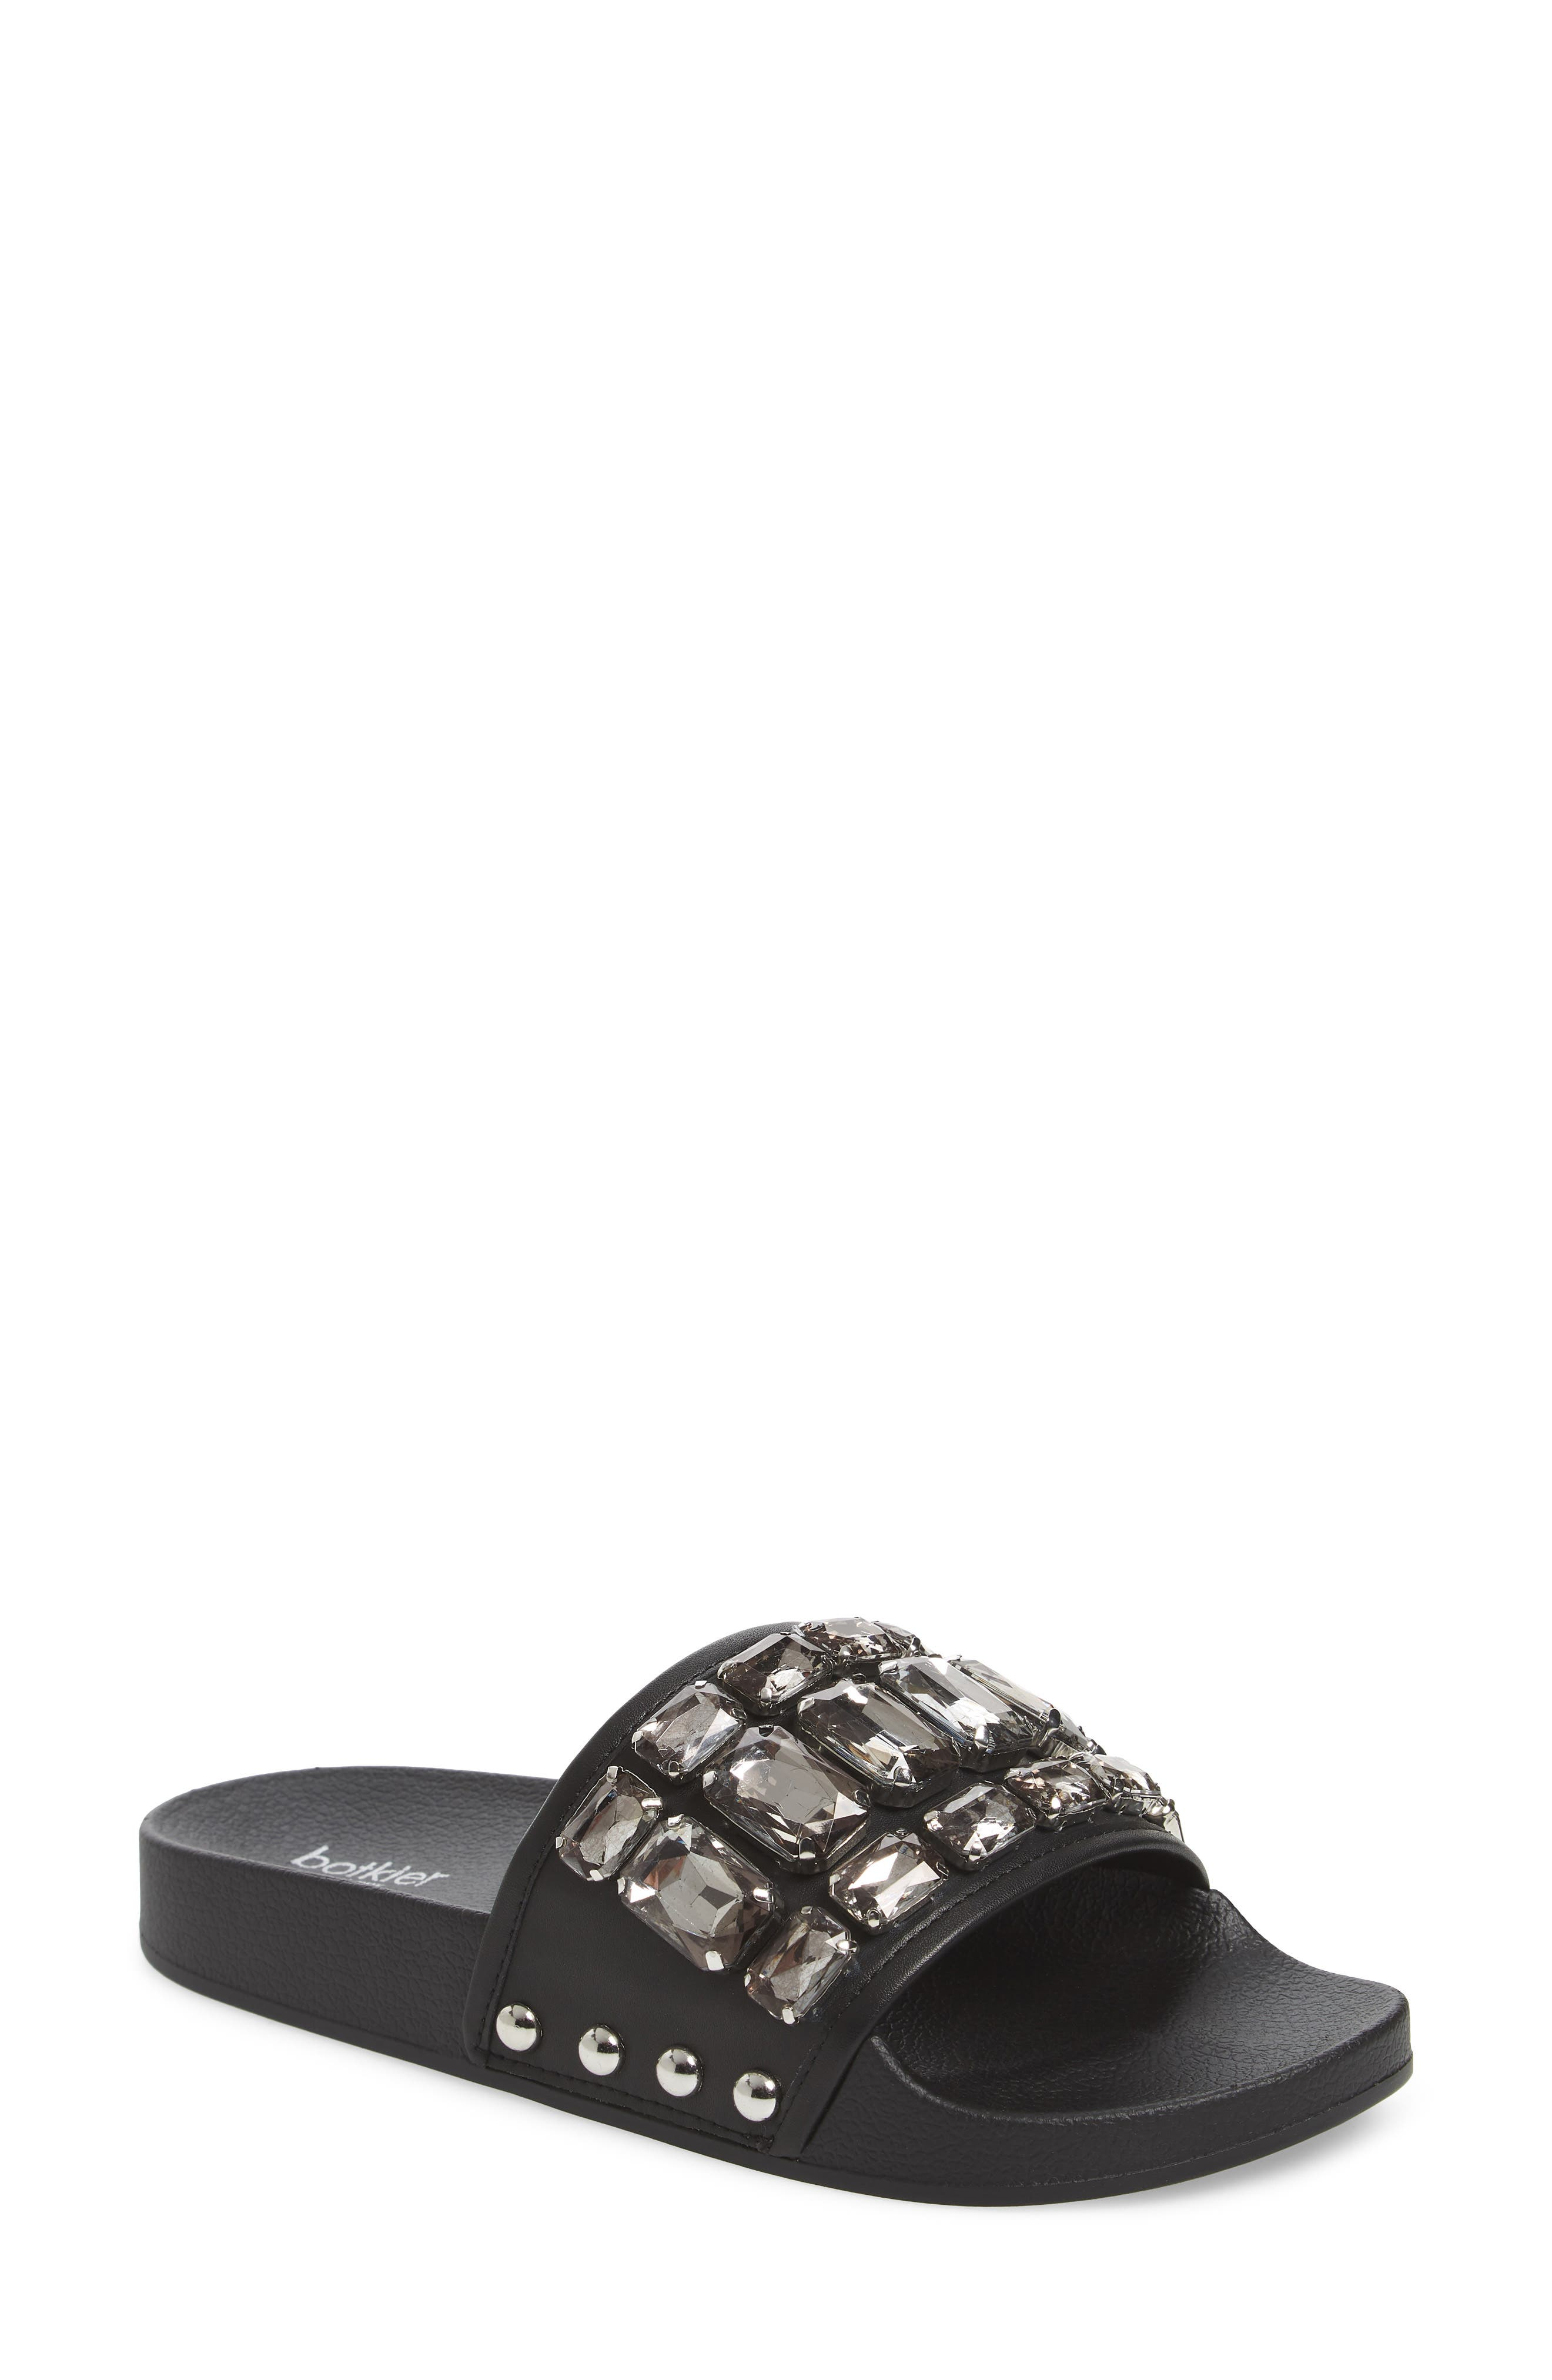 Freda Crystal Slide Sandal,                         Main,                         color, BLACK LEATHER